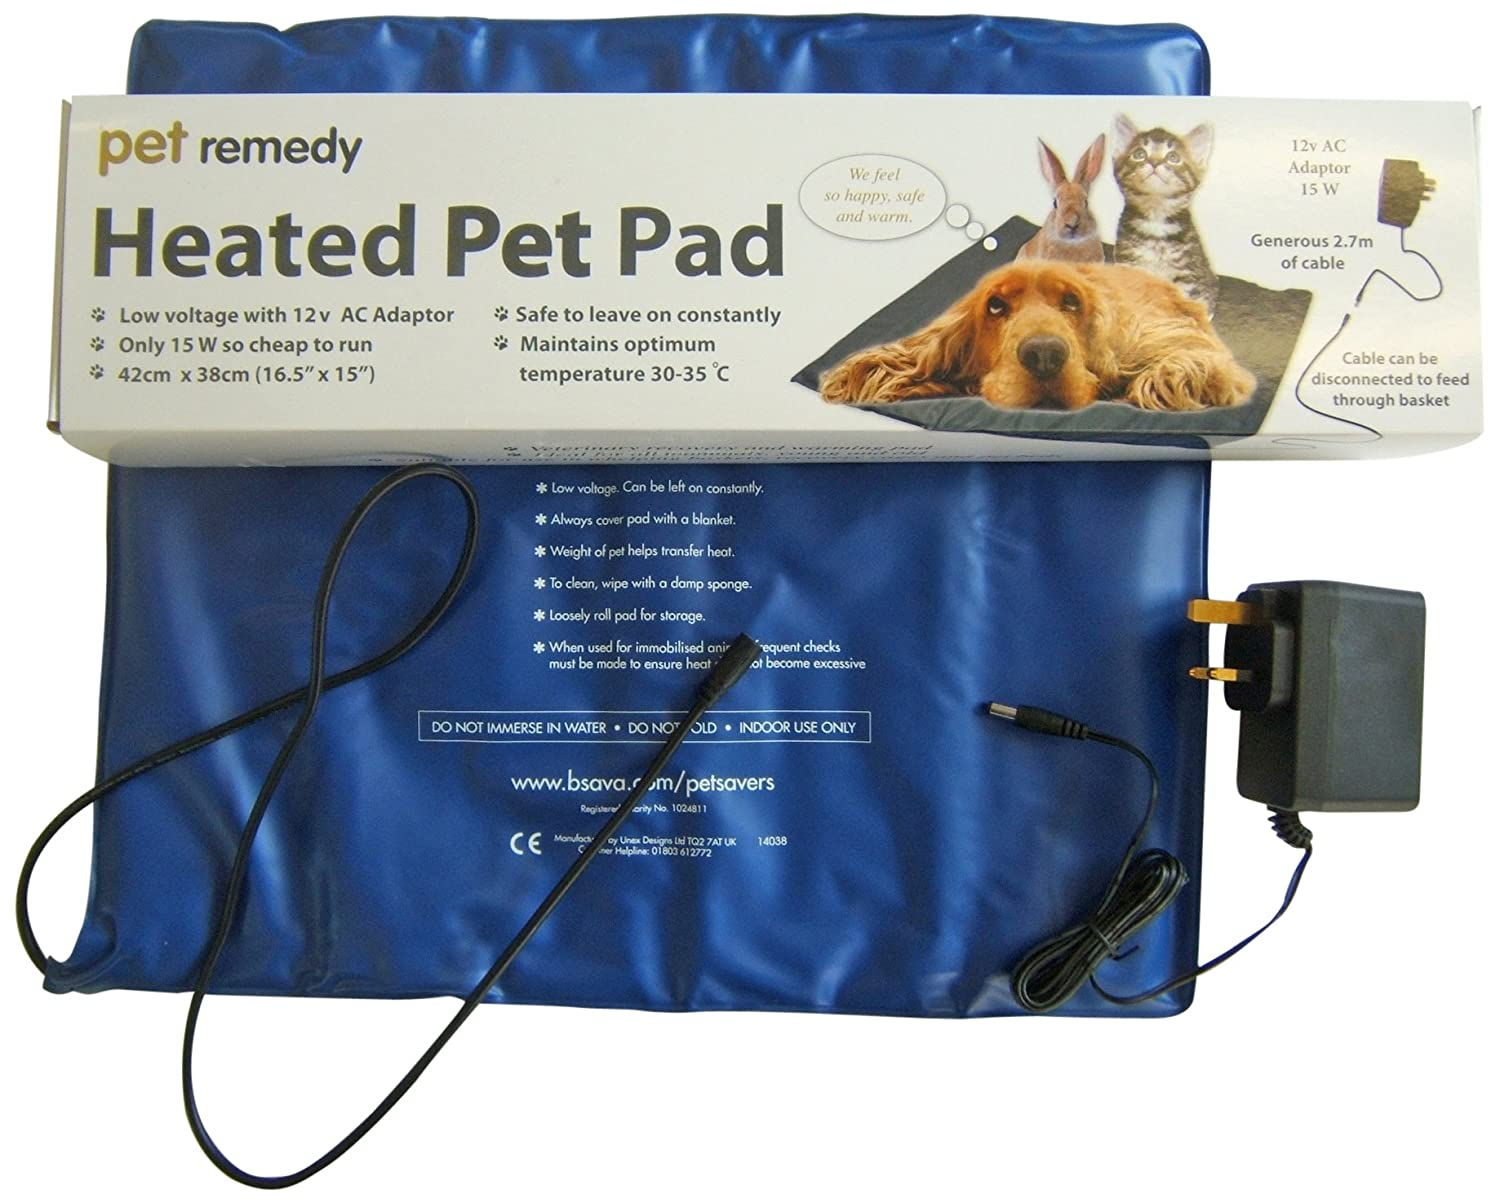 Pet Remedy Low Voltage Electrically Heated Pet Pad 9566